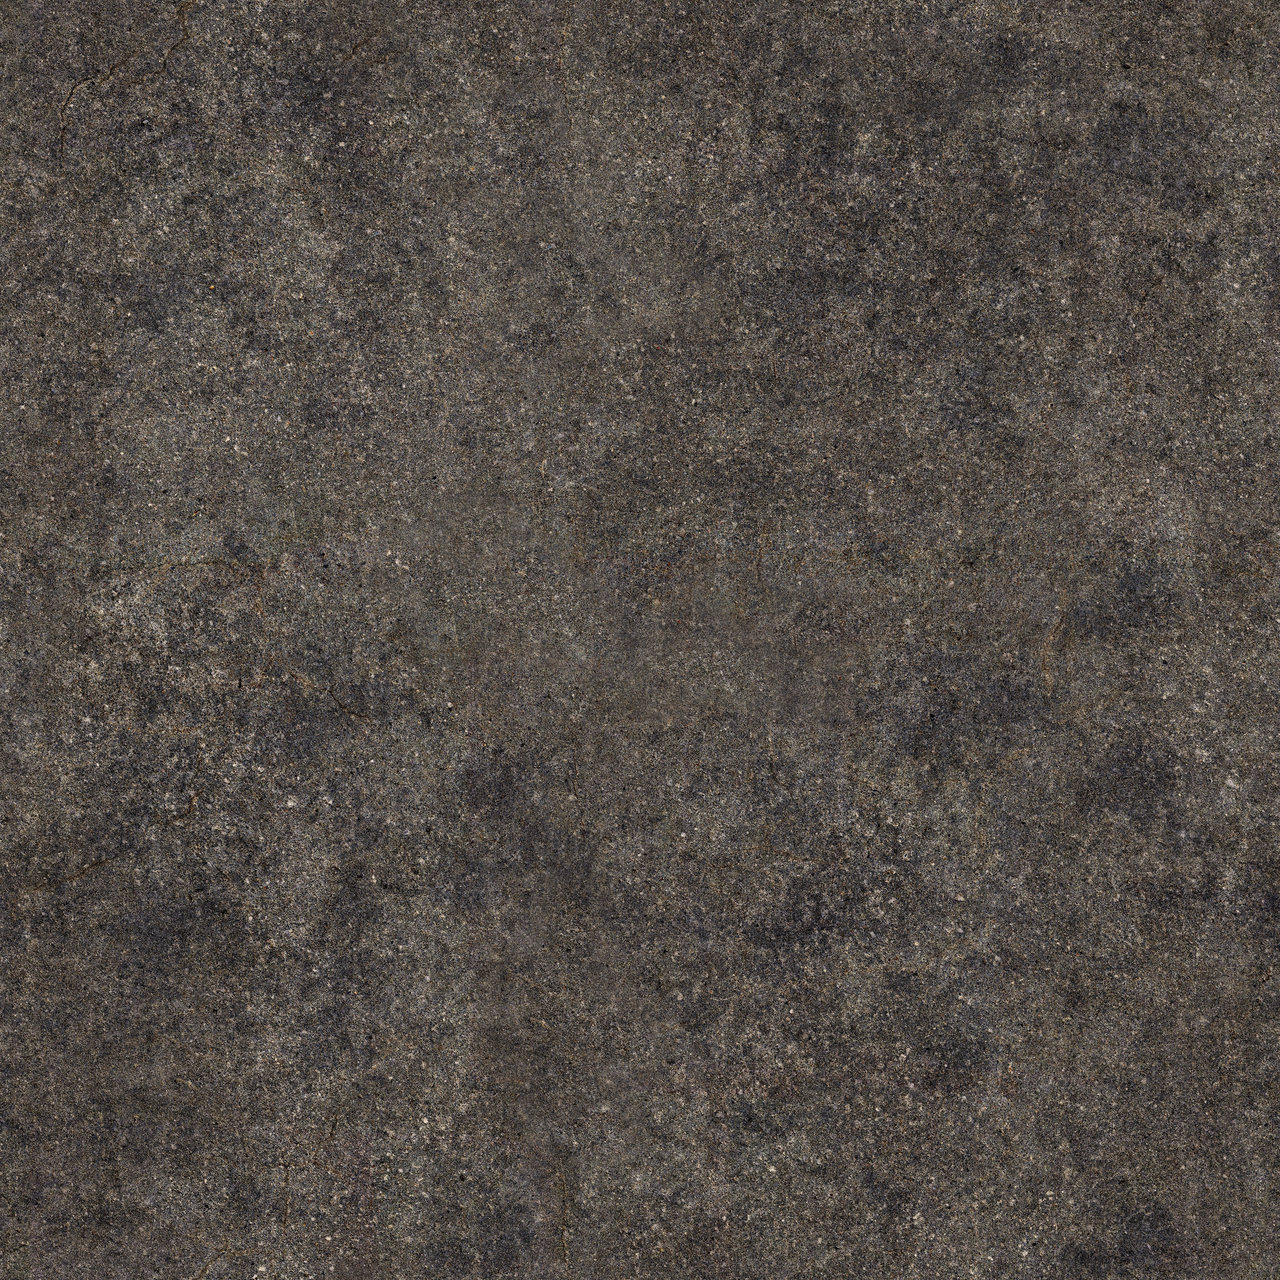 High Resolution Rough Concrete Texture